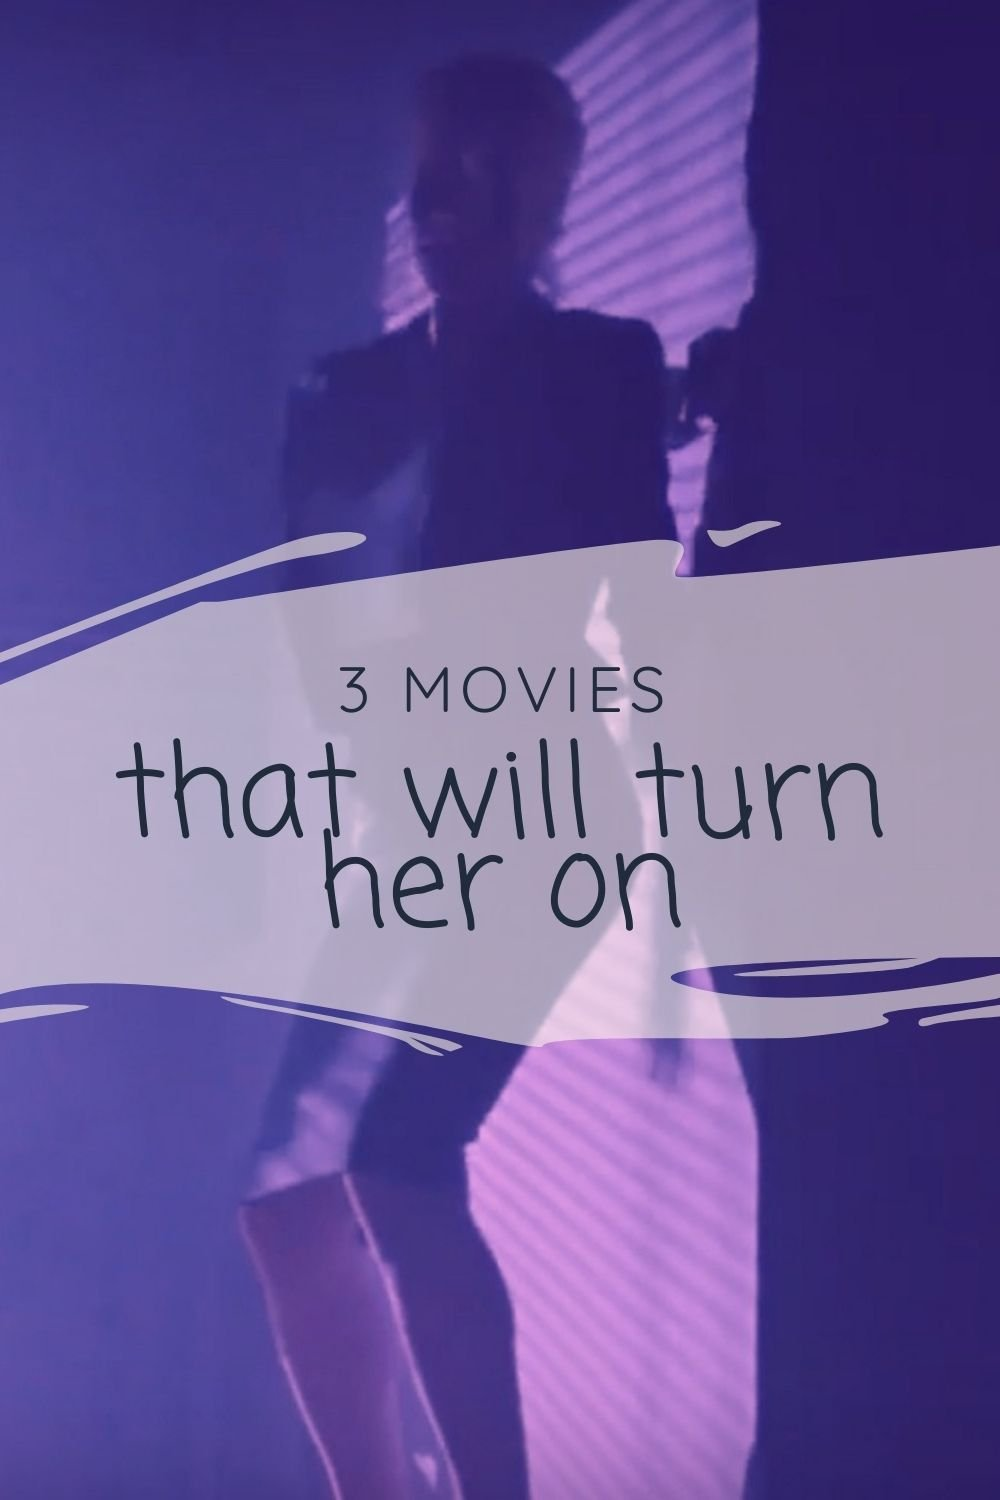 Uncontrollable passion and no limits flares up between the protagonists, for 3 Movies that will turn her on... and him too. #MOVIES